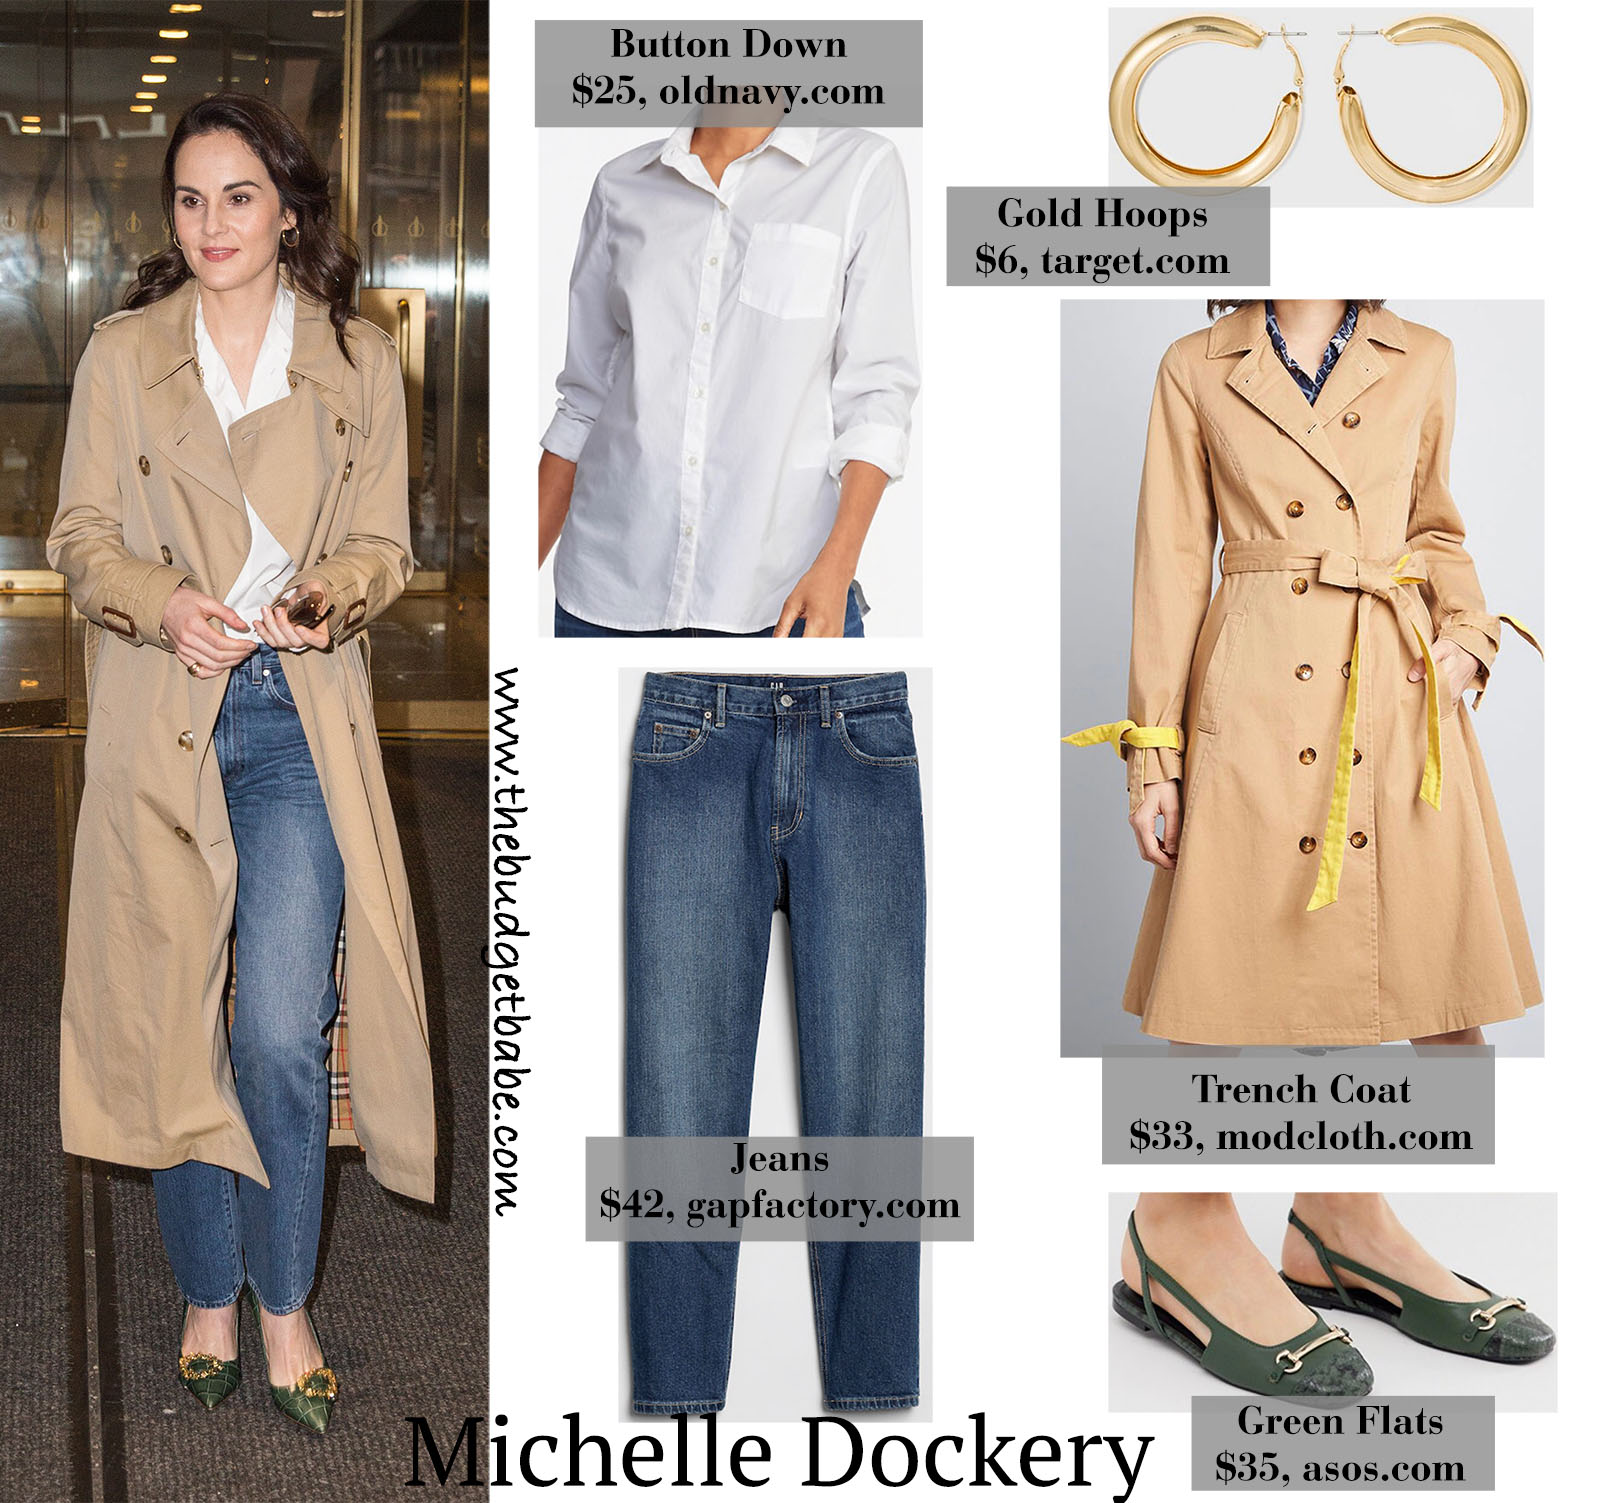 Michelle Dockery looks classic and chic in a long trench coat and green flats!